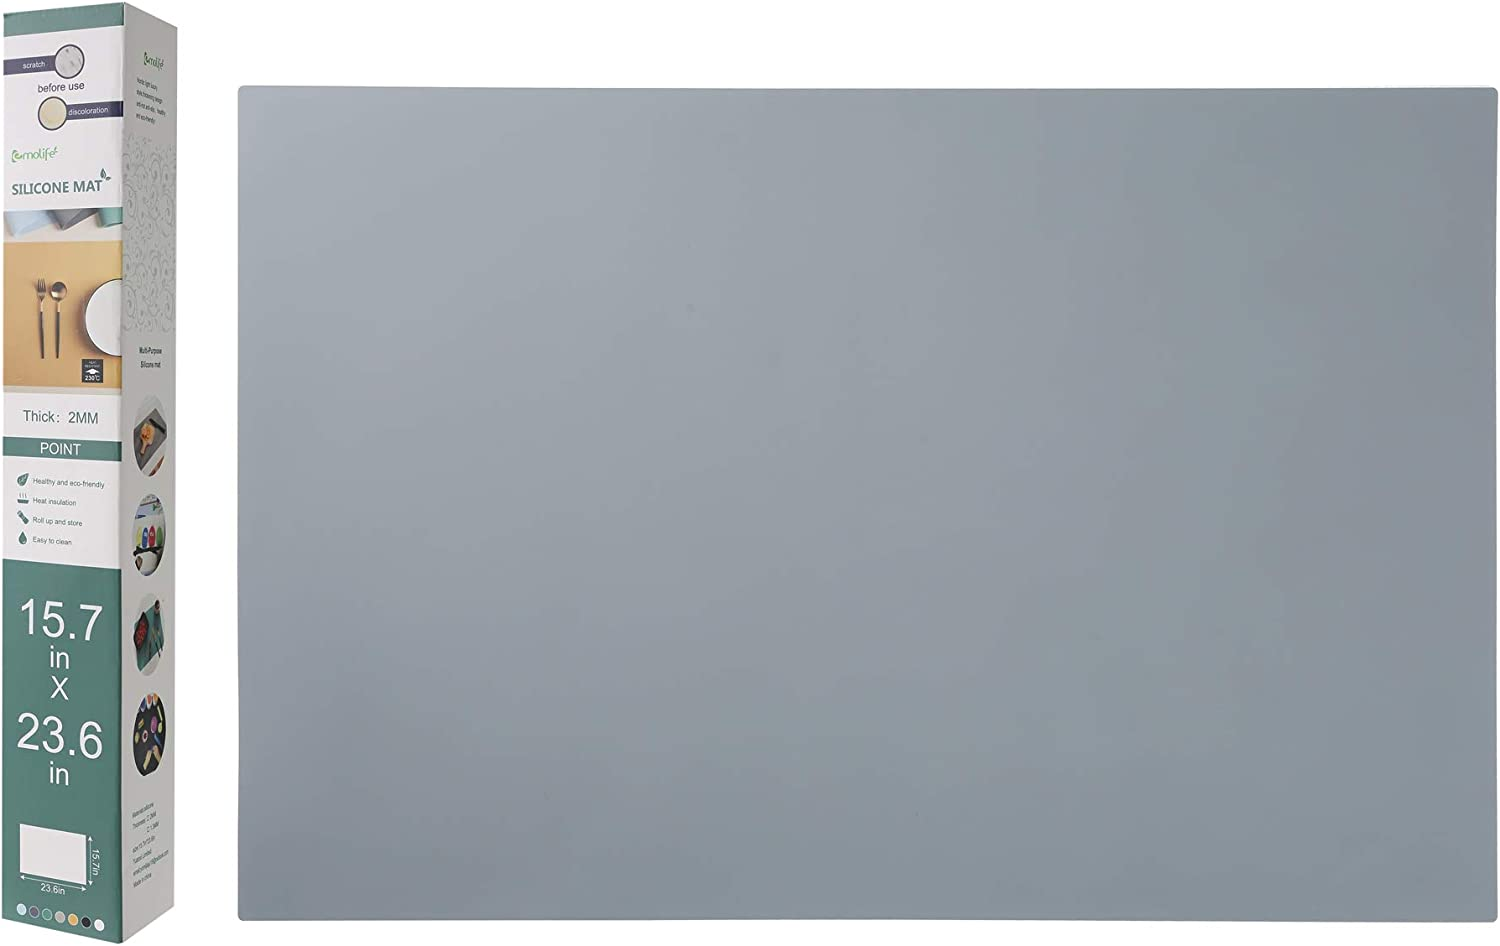 Silicone Mats, Countertop Protector, Thick 2mm, Heat Resistant Nonskid Table Mat, Silicon Baking Mat, Dough Rolling mat, Pie and Fondant Mat, 15.7 by 23.6 inches (Dark Grey)